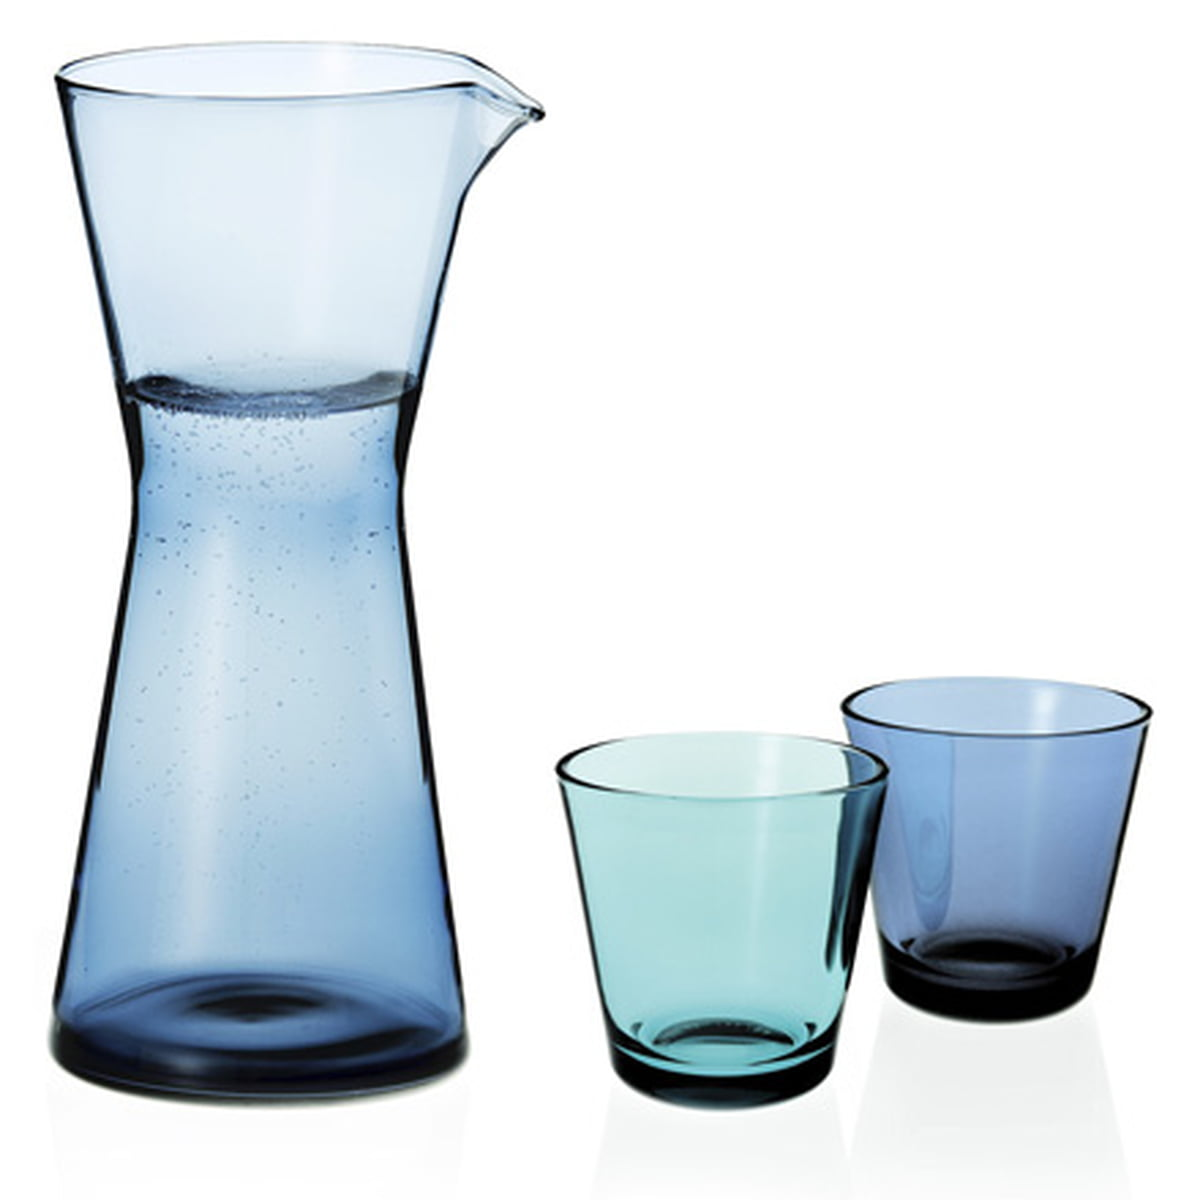 Iittala glasses set by iittala Unusual drinking glasses uk